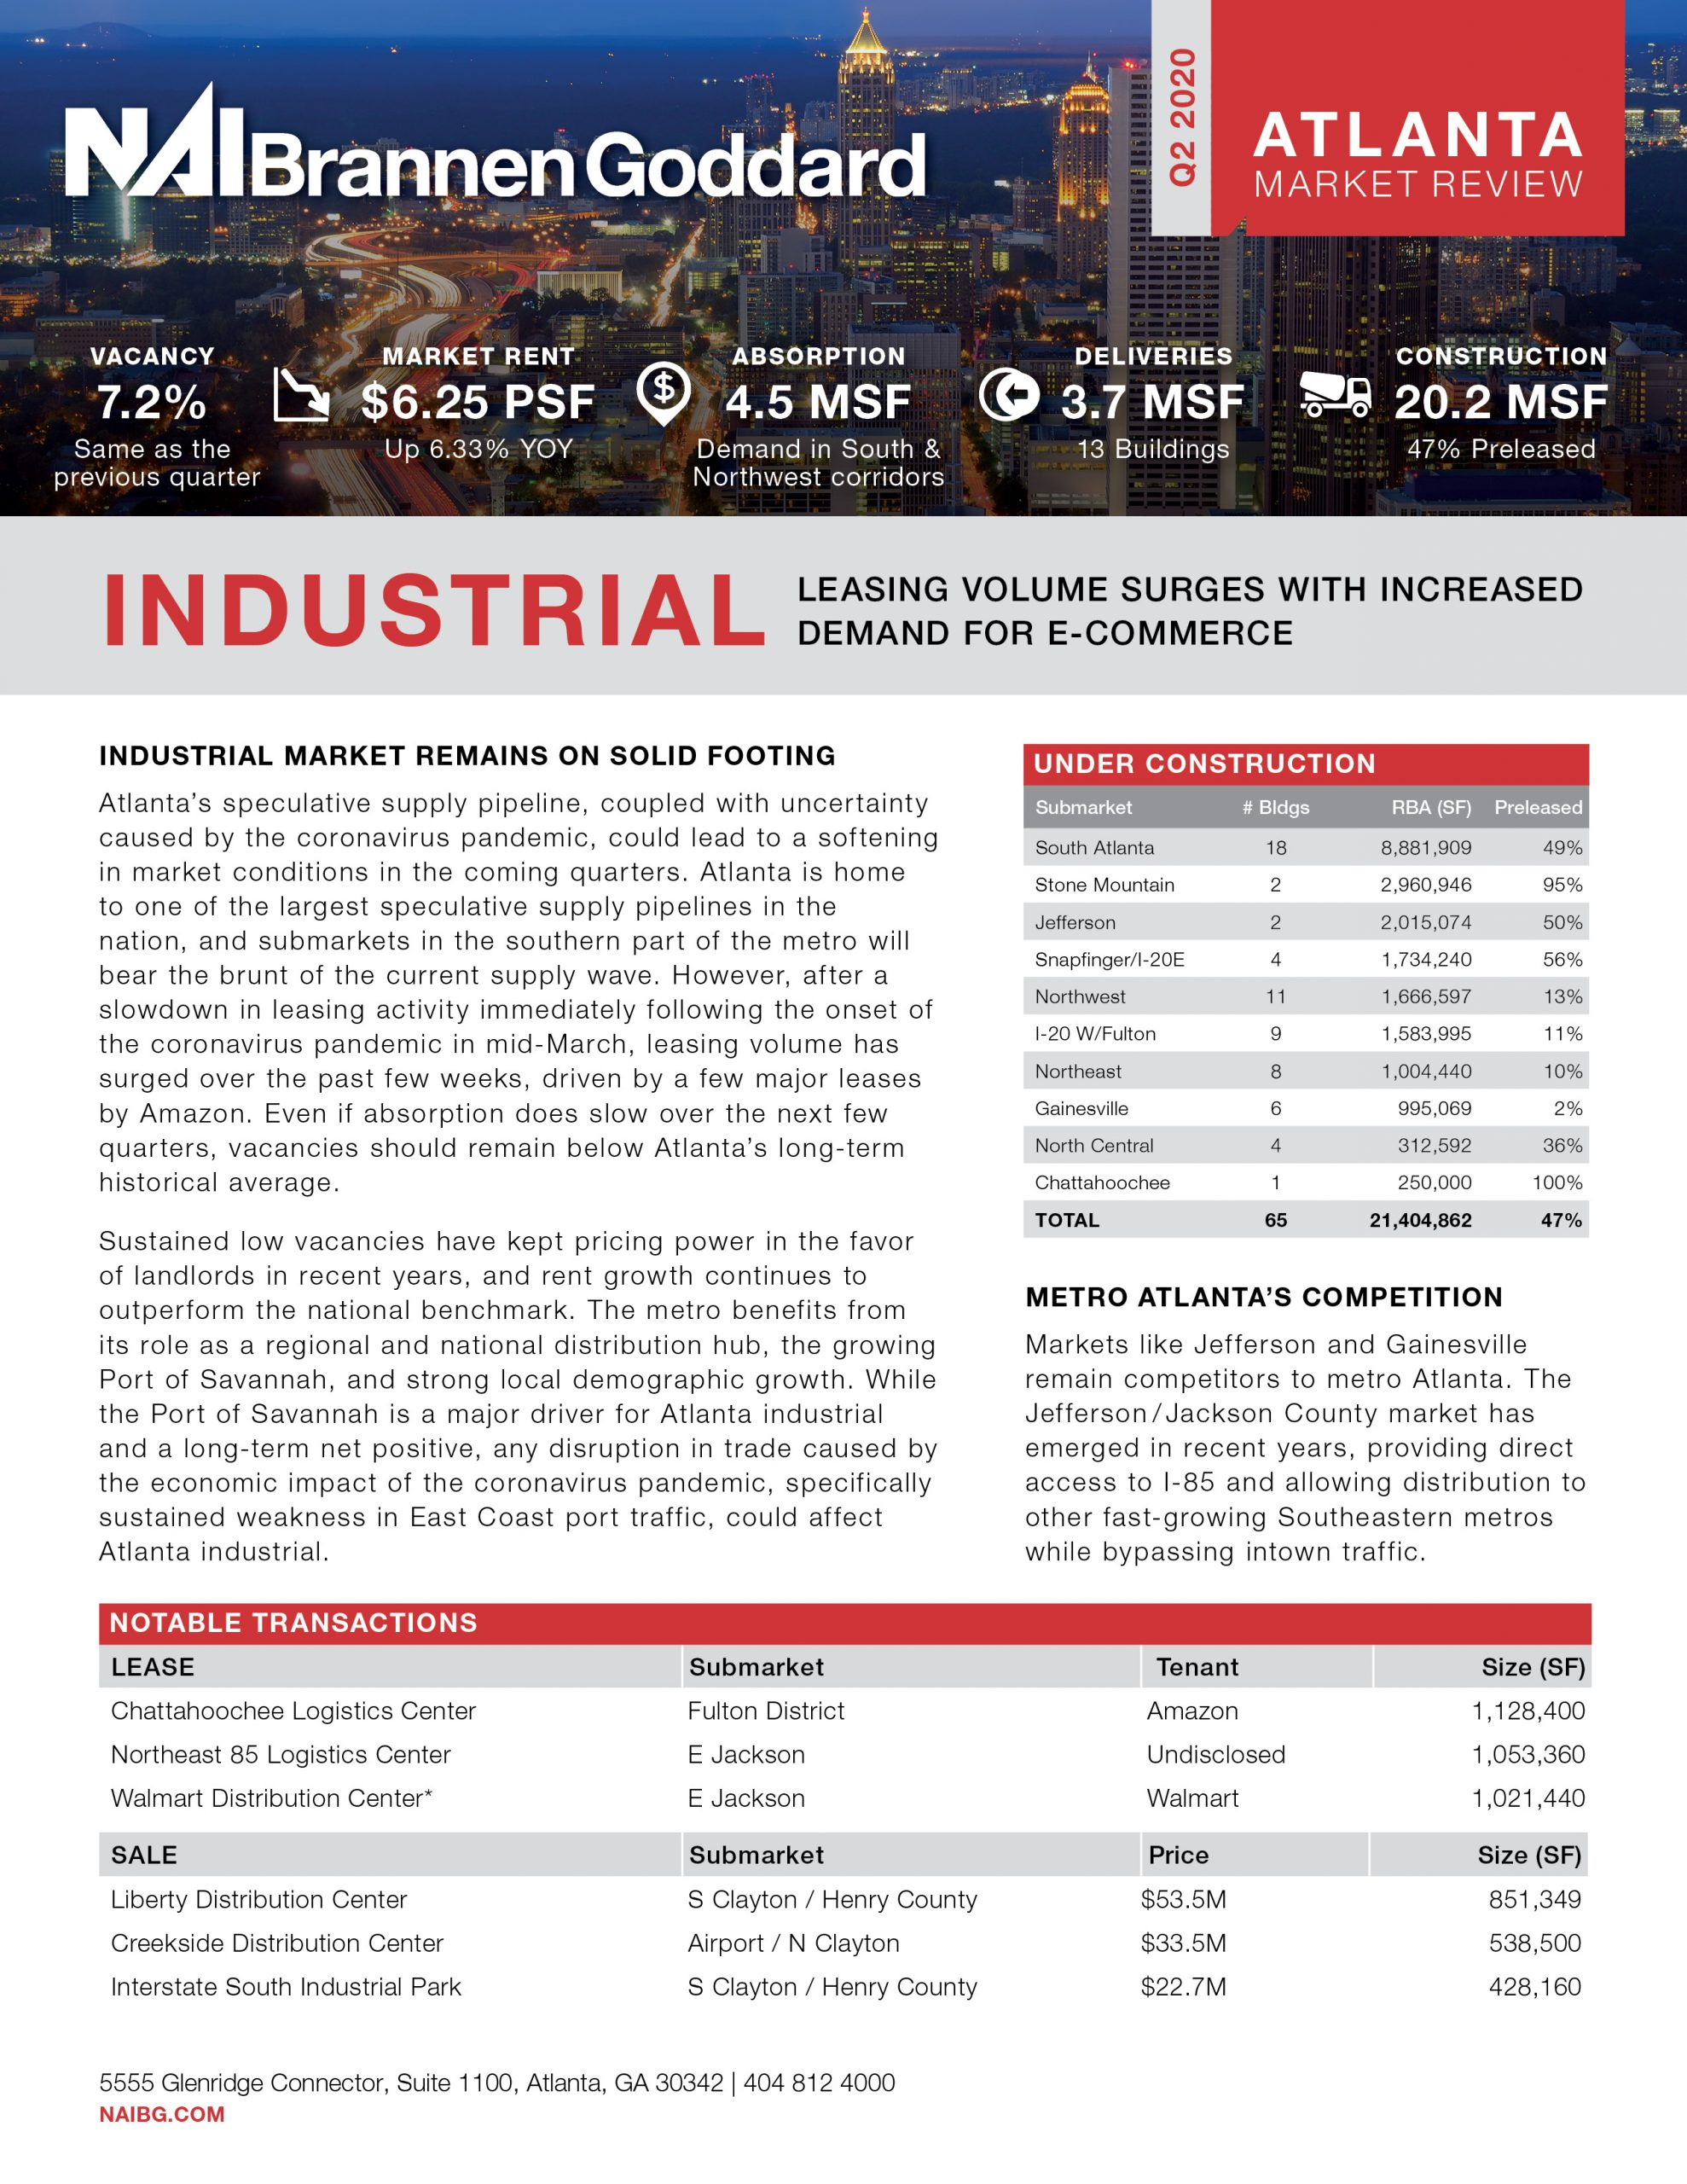 Atlanta Industrial Market Review